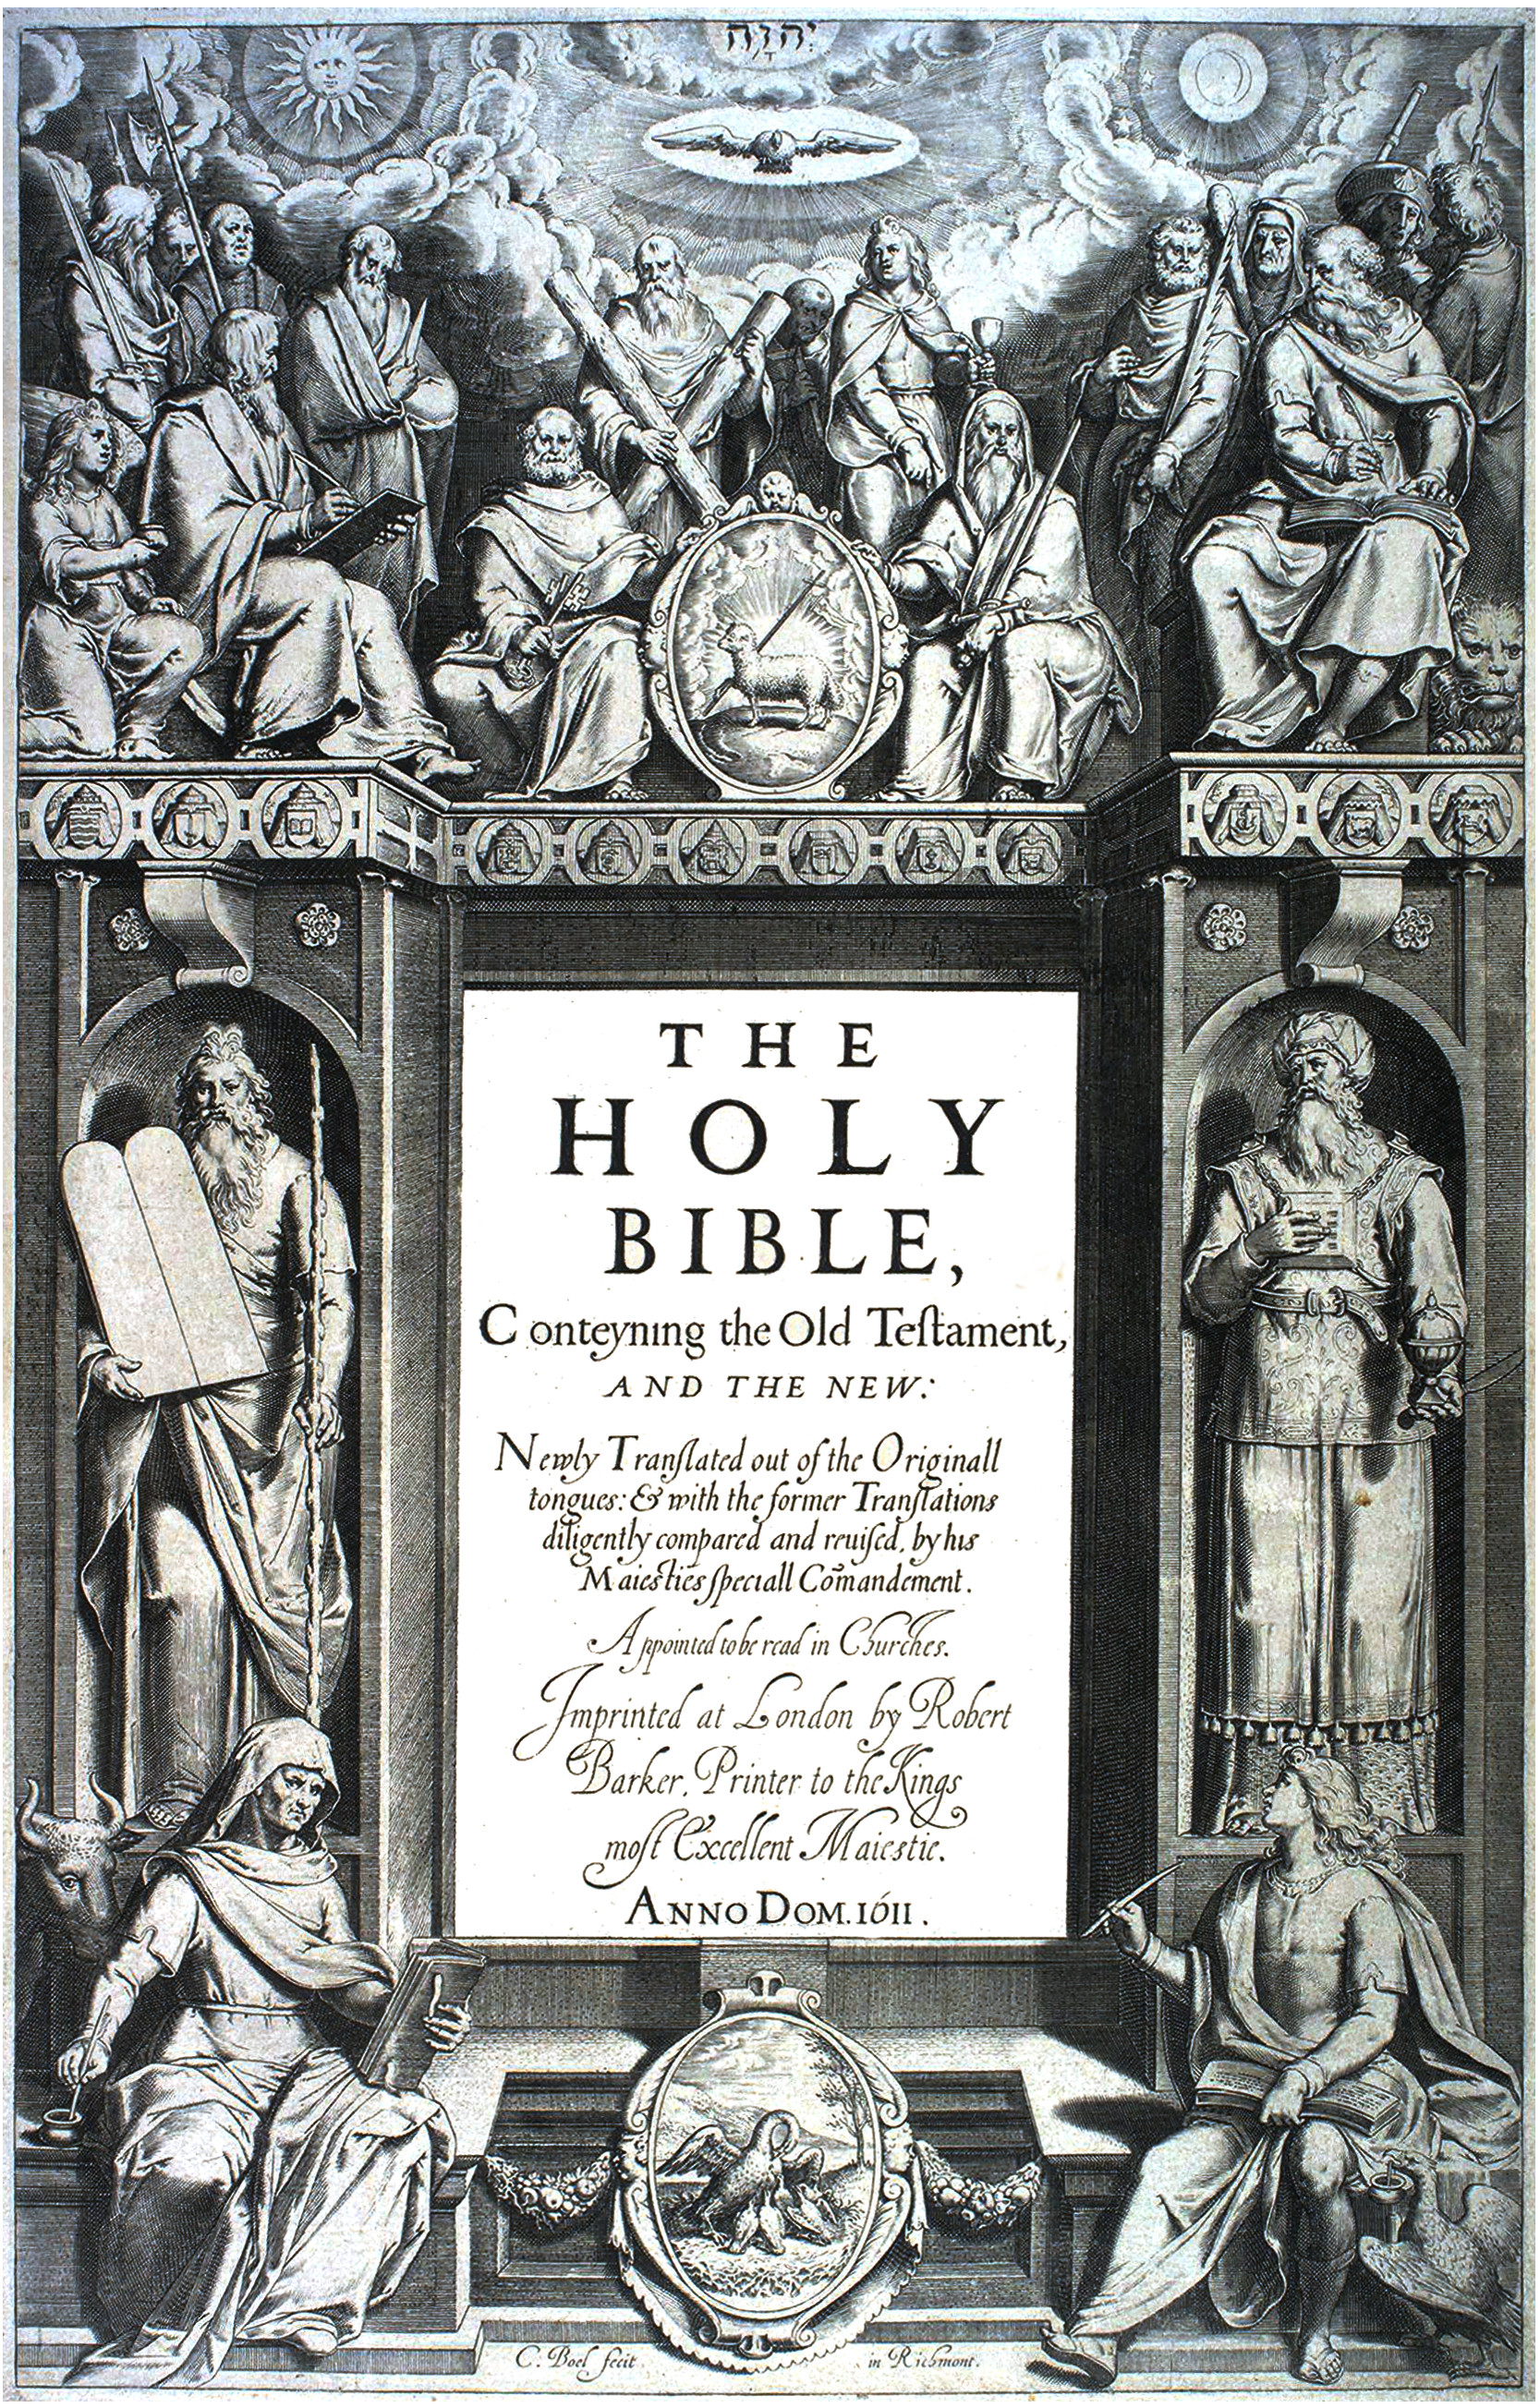 History of the kjv bible